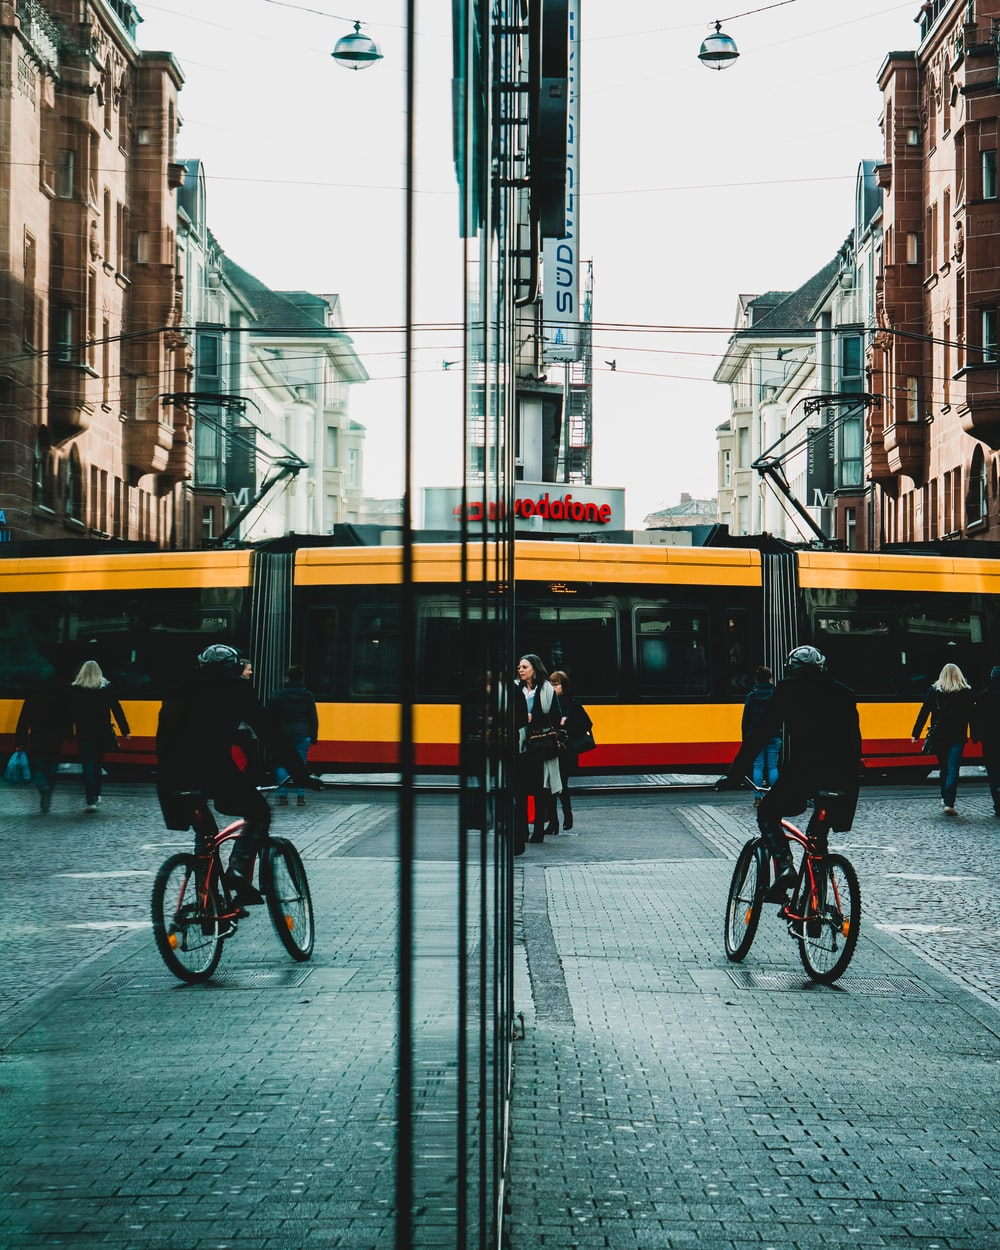 yellow and black bus on road during daytime